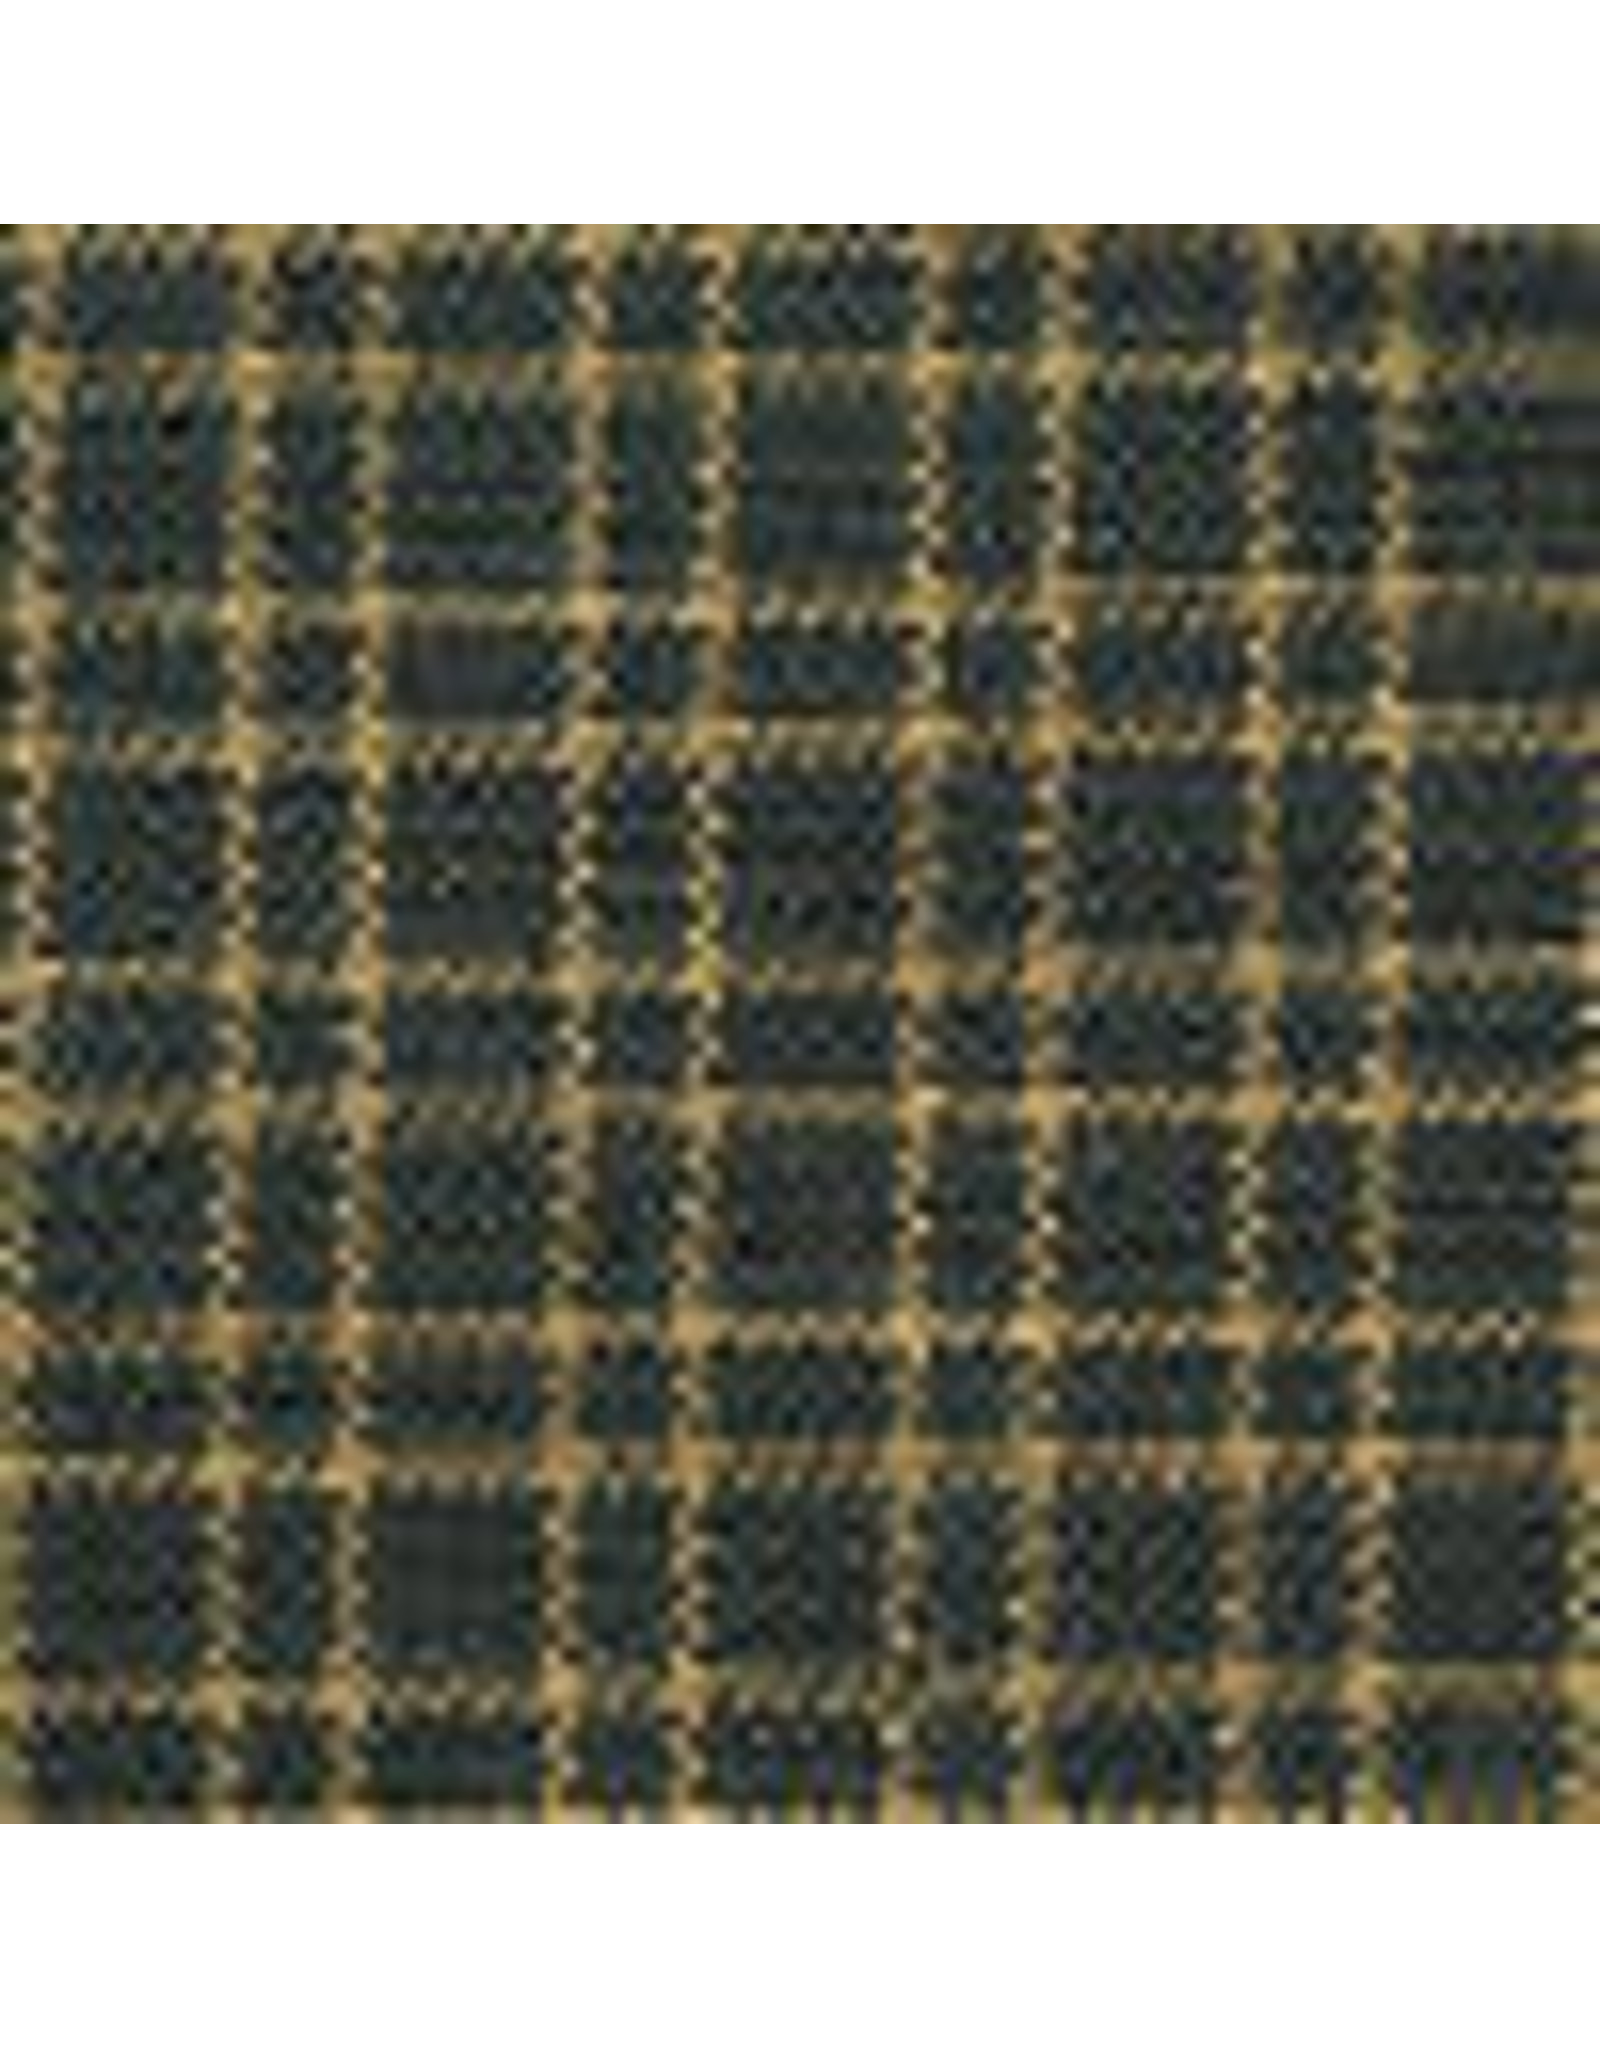 Yd. Green and Tan Reverse Double Pane Fabric #411